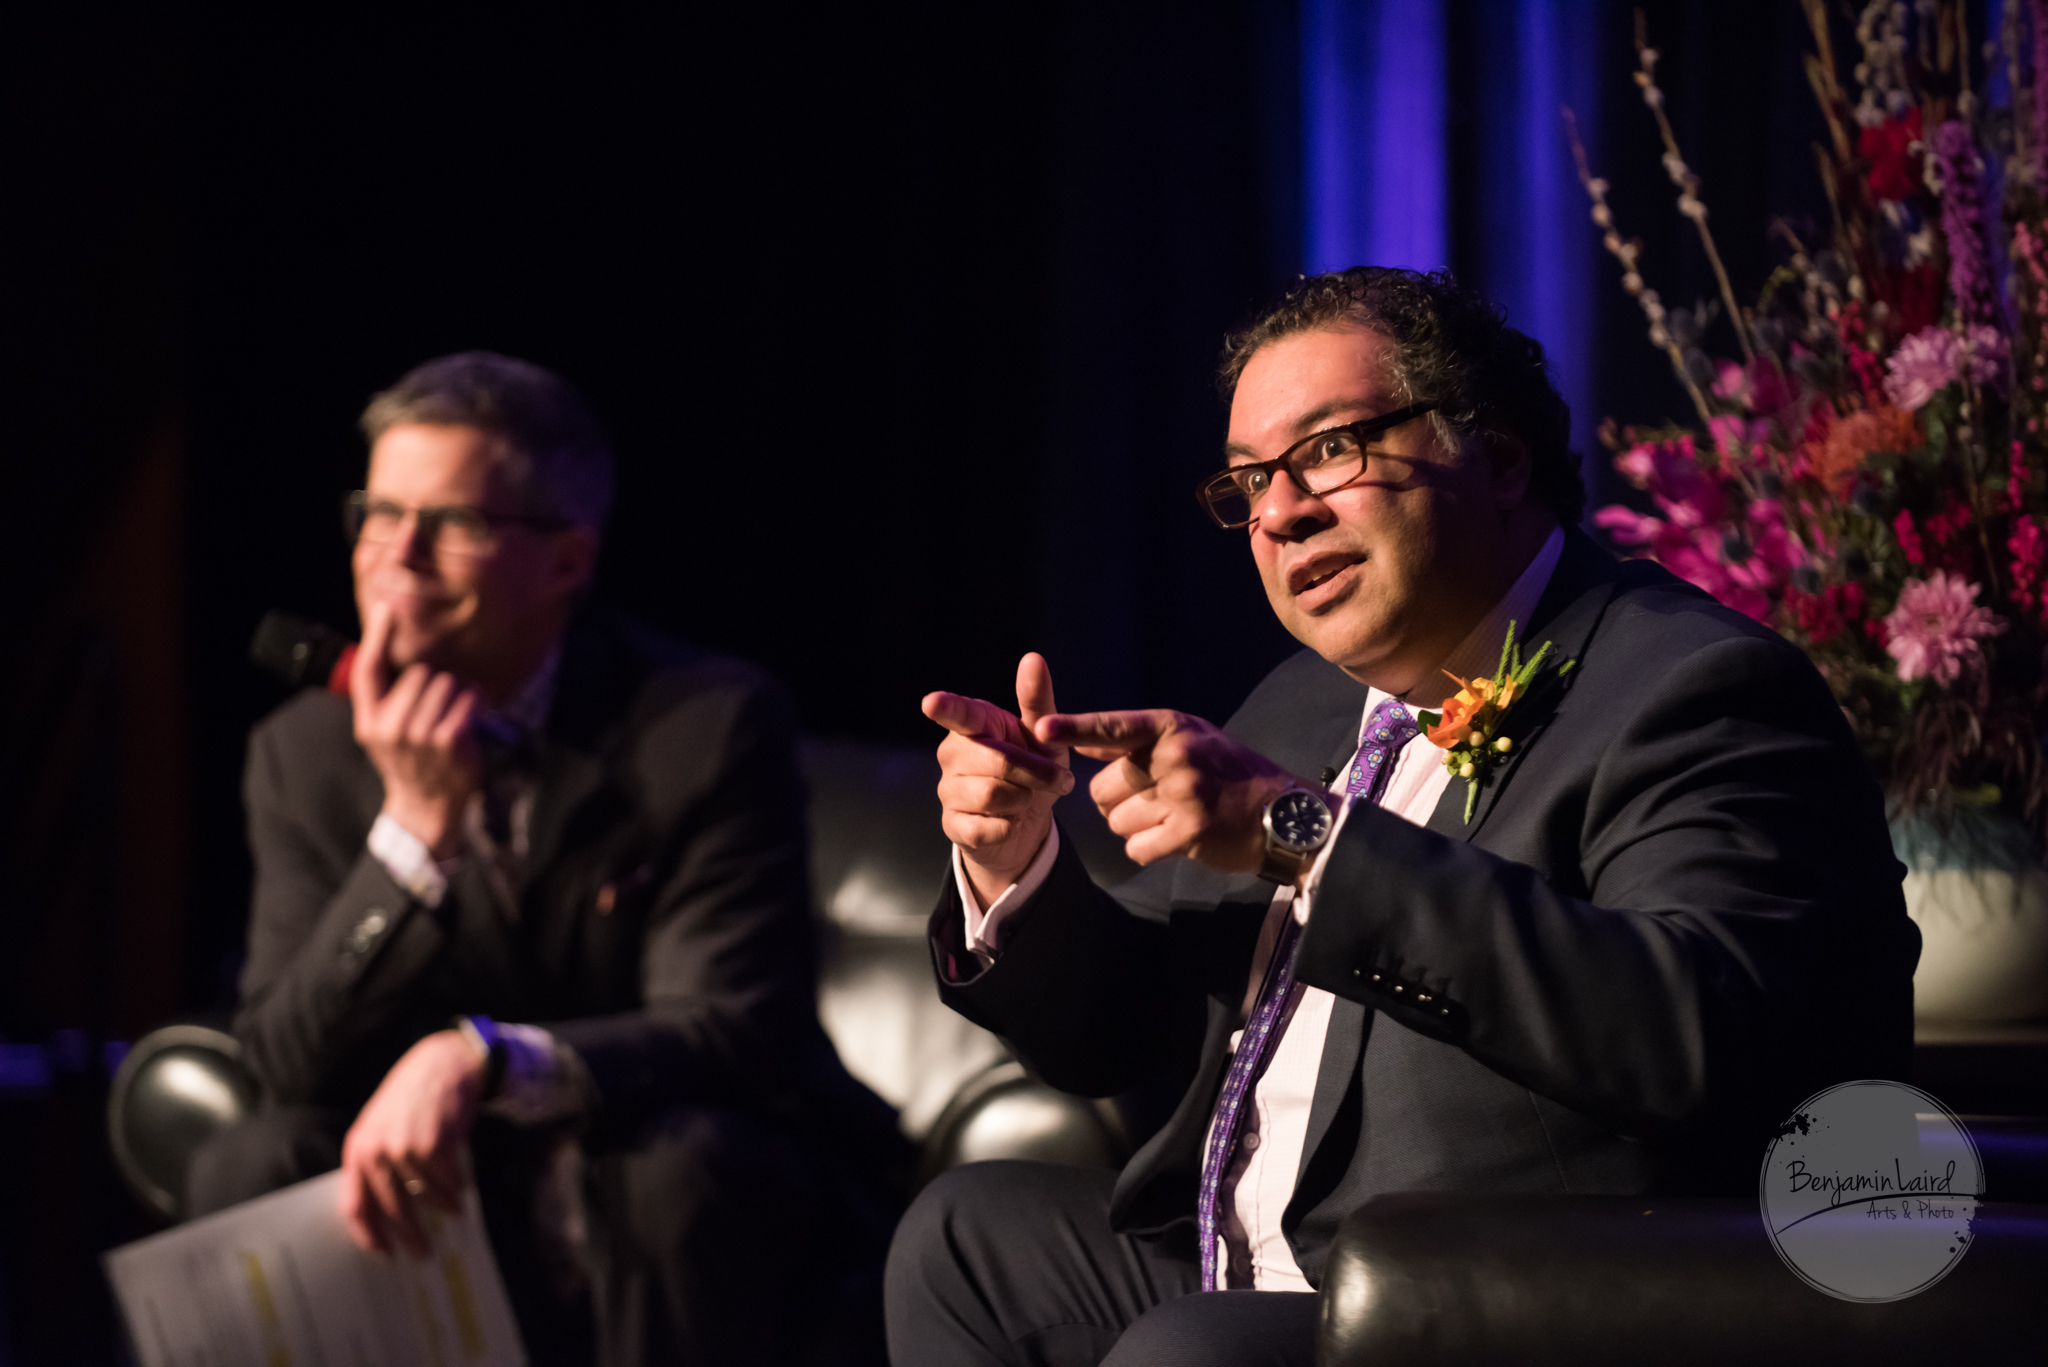 Dave Kelly and Mayor Naheed Nenshi converse at the Mayor's Lunch 2018